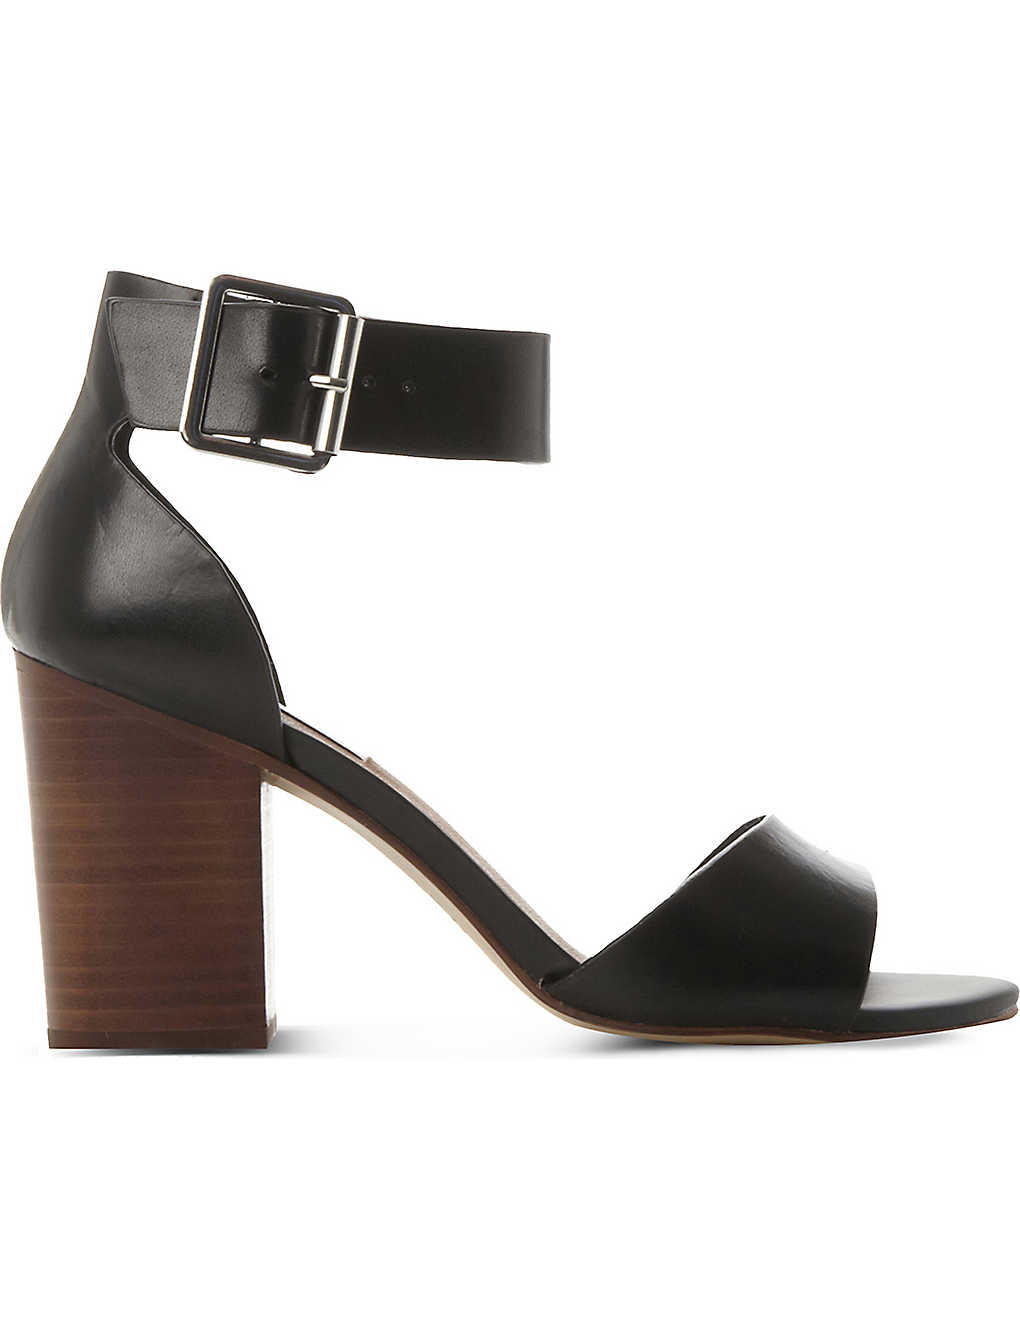 ef78fc5ff2d STEVE MADDEN - Estoria leather heeled sandals | Selfridges.com